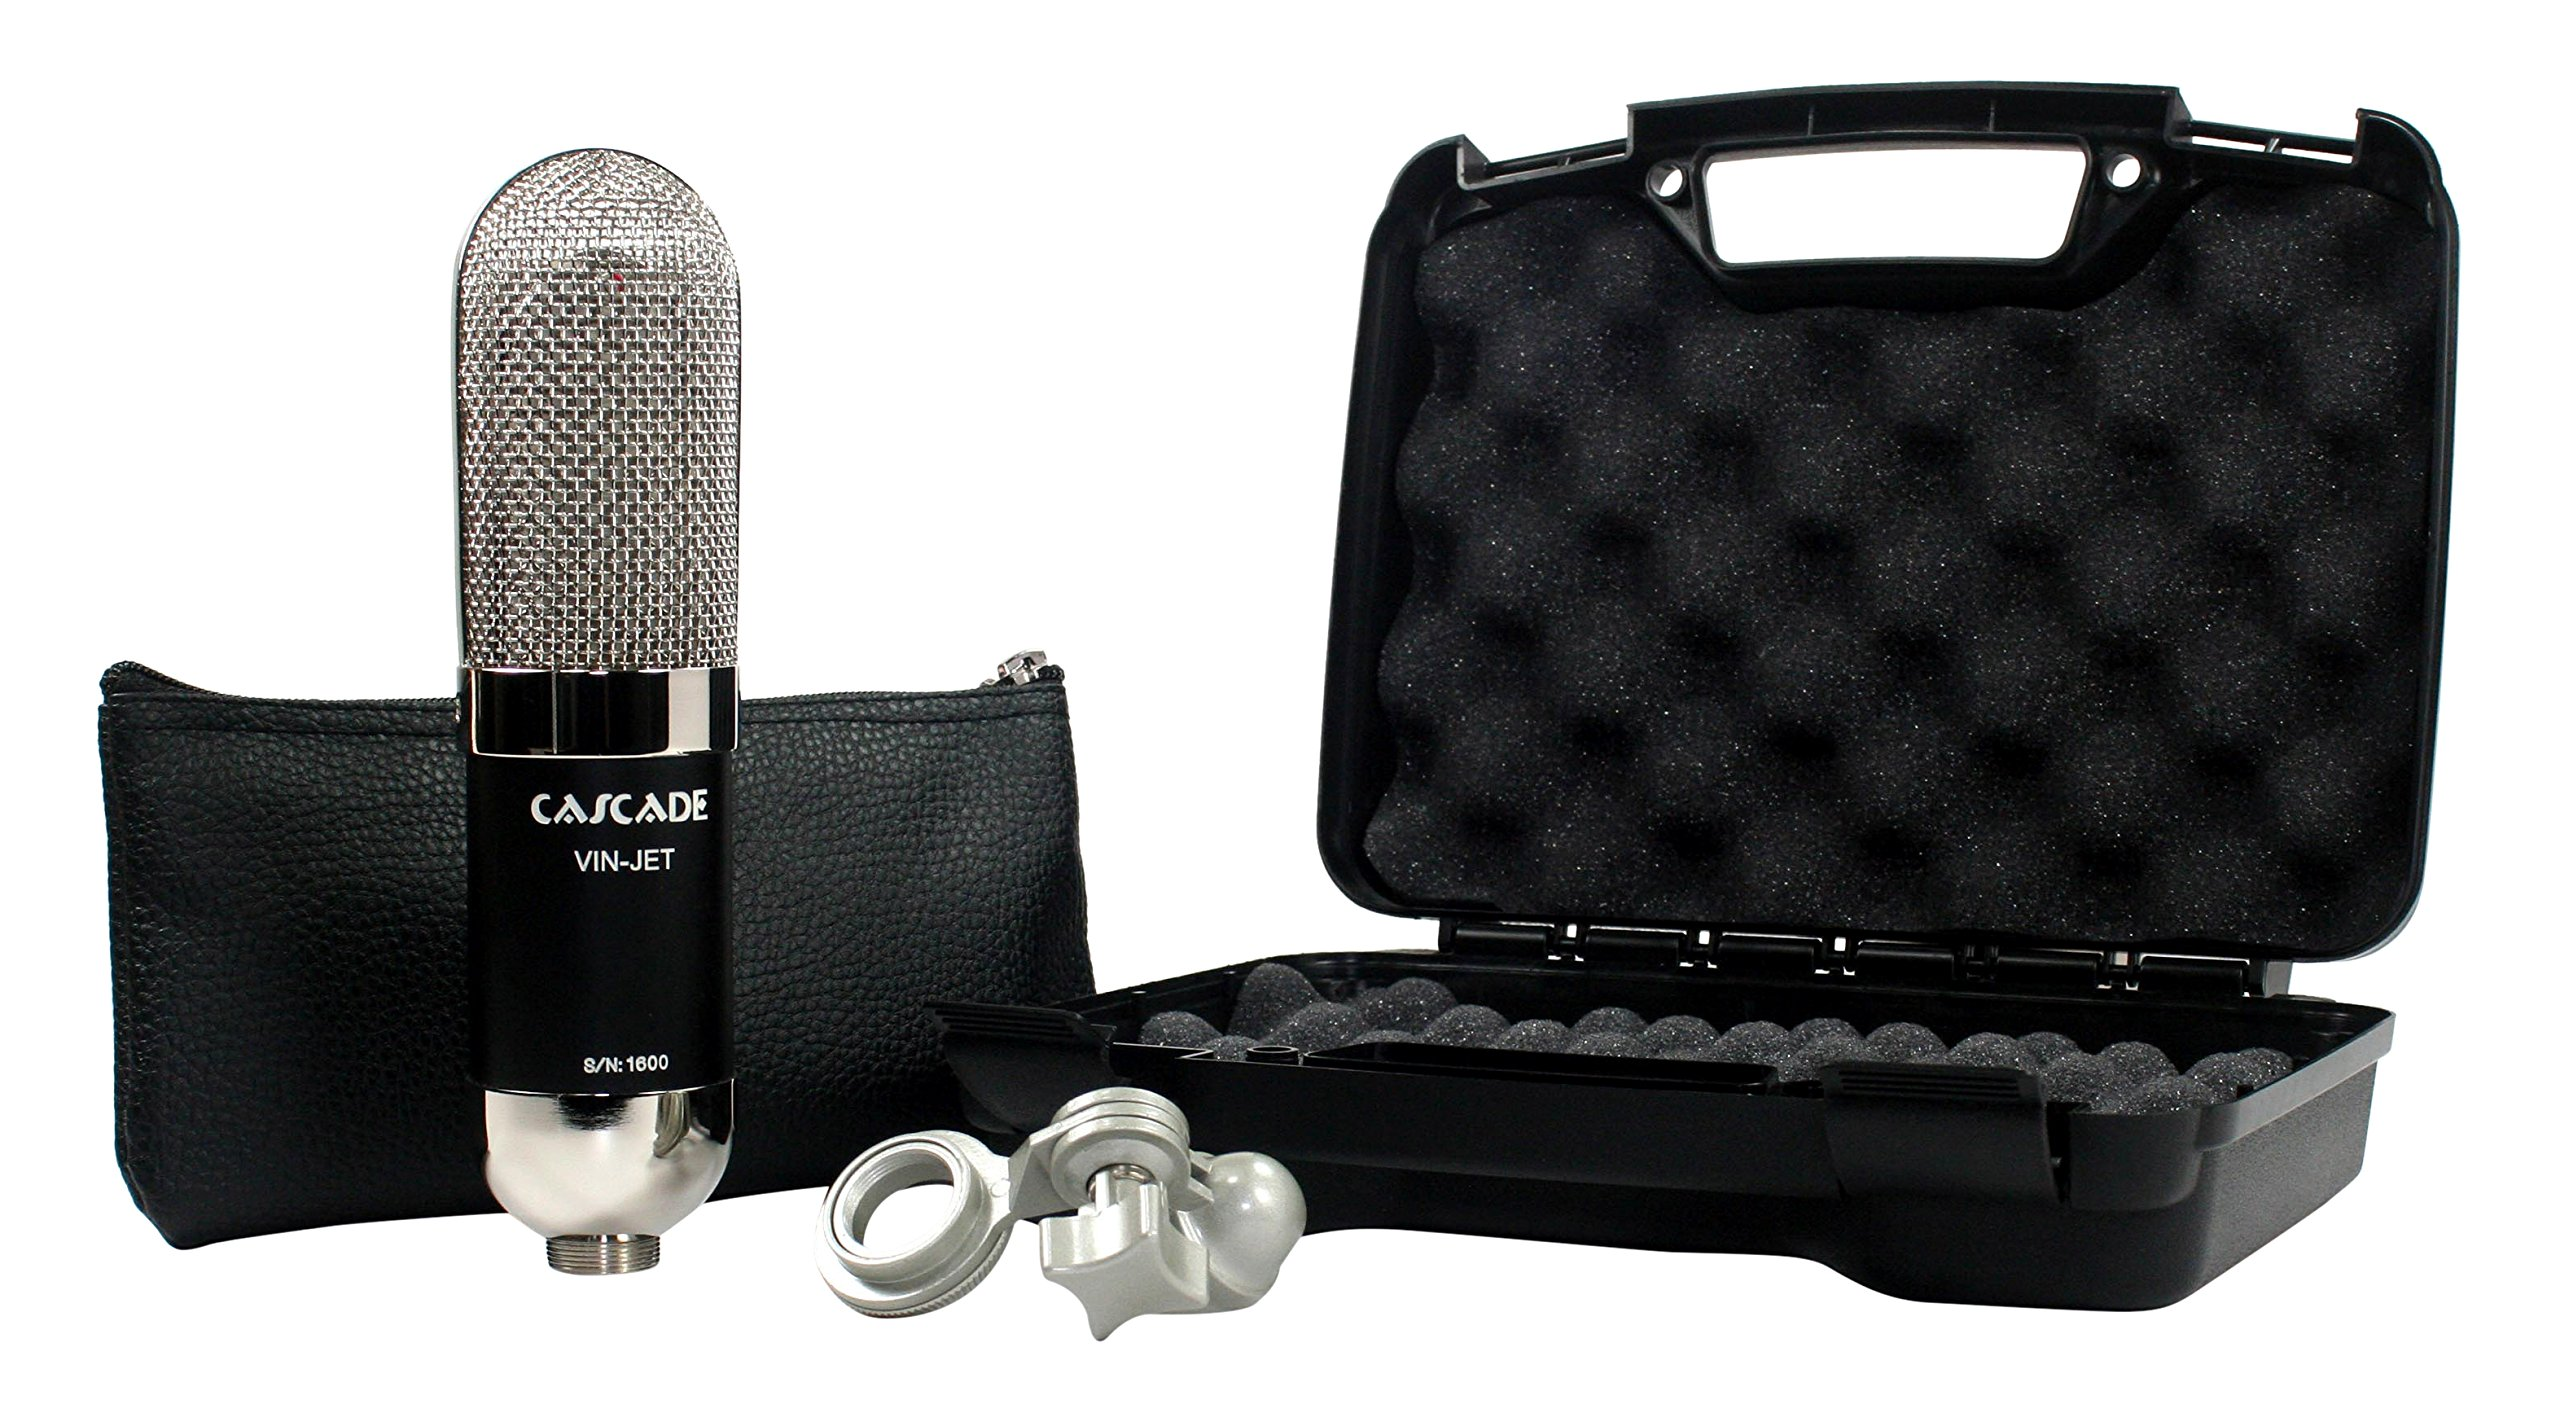 Cascade Microphones VIN-JET - Black/Nickel Ribbon Microphone, Black Body/Polished Nickel Grill